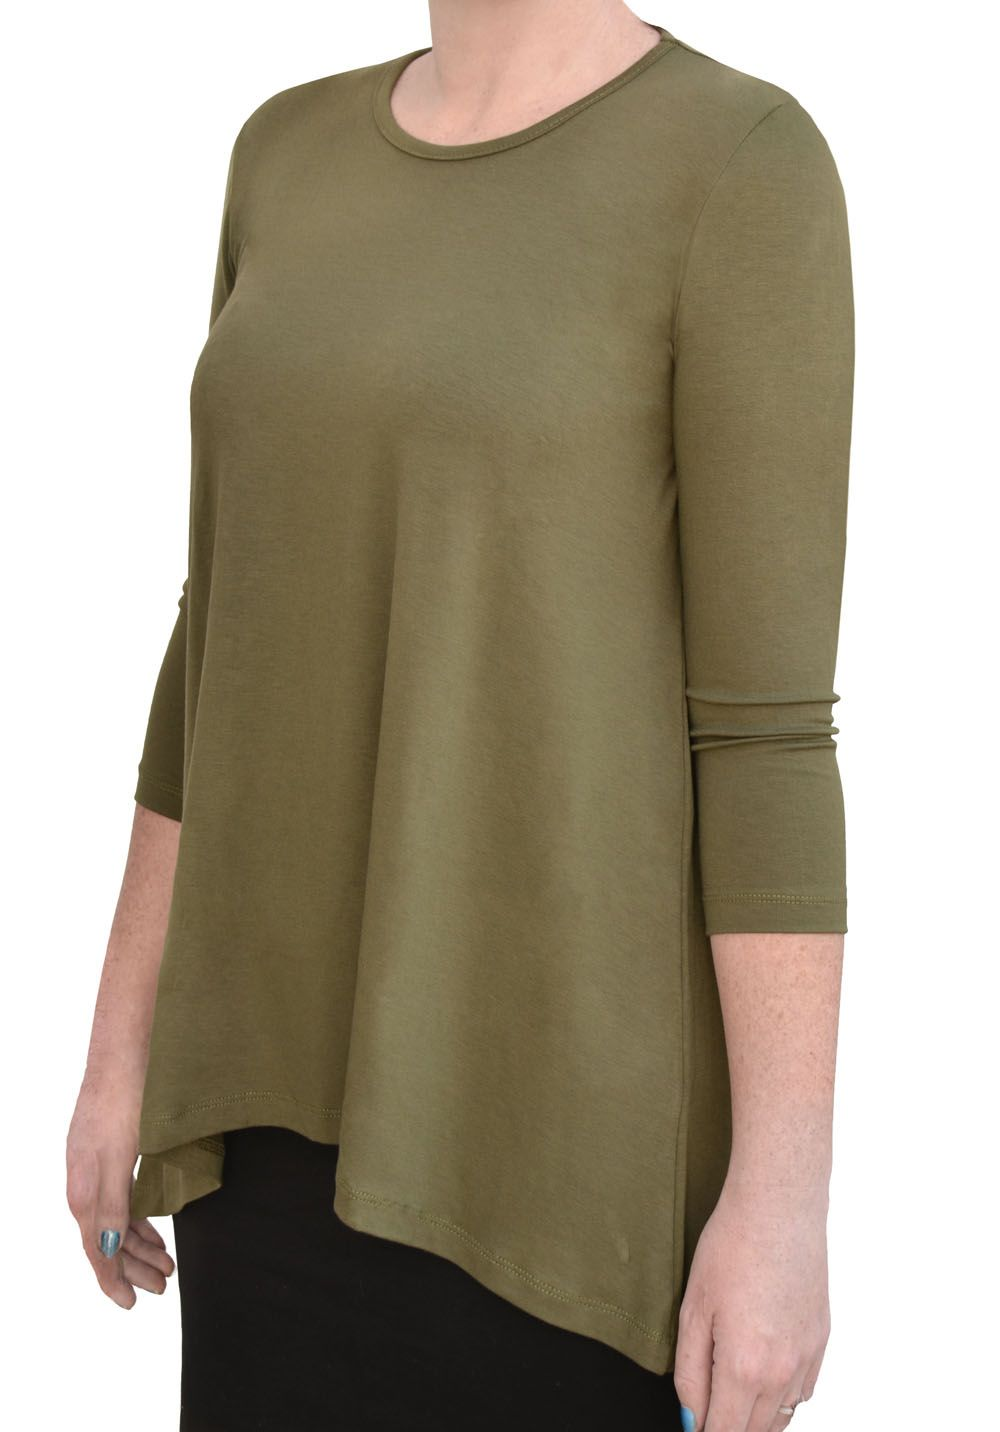 Directional Yet Demure Clothing For The Cool Modern Woman: Modest Tunic That Covers The Parts You Prefer Not To Show